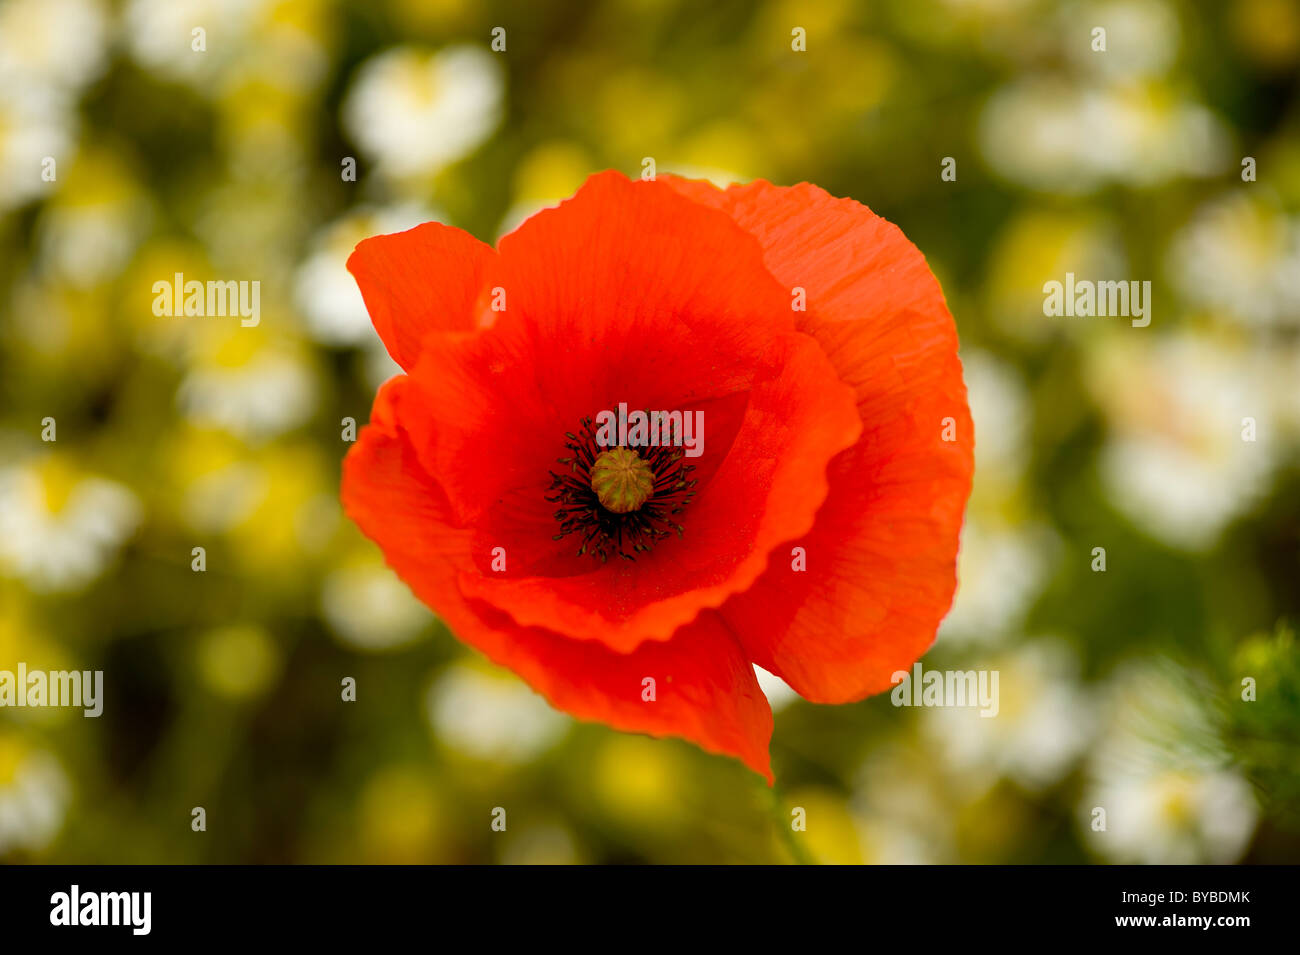 Single red poppy growing wild in UK meadow with daisies in background. - Stock Image